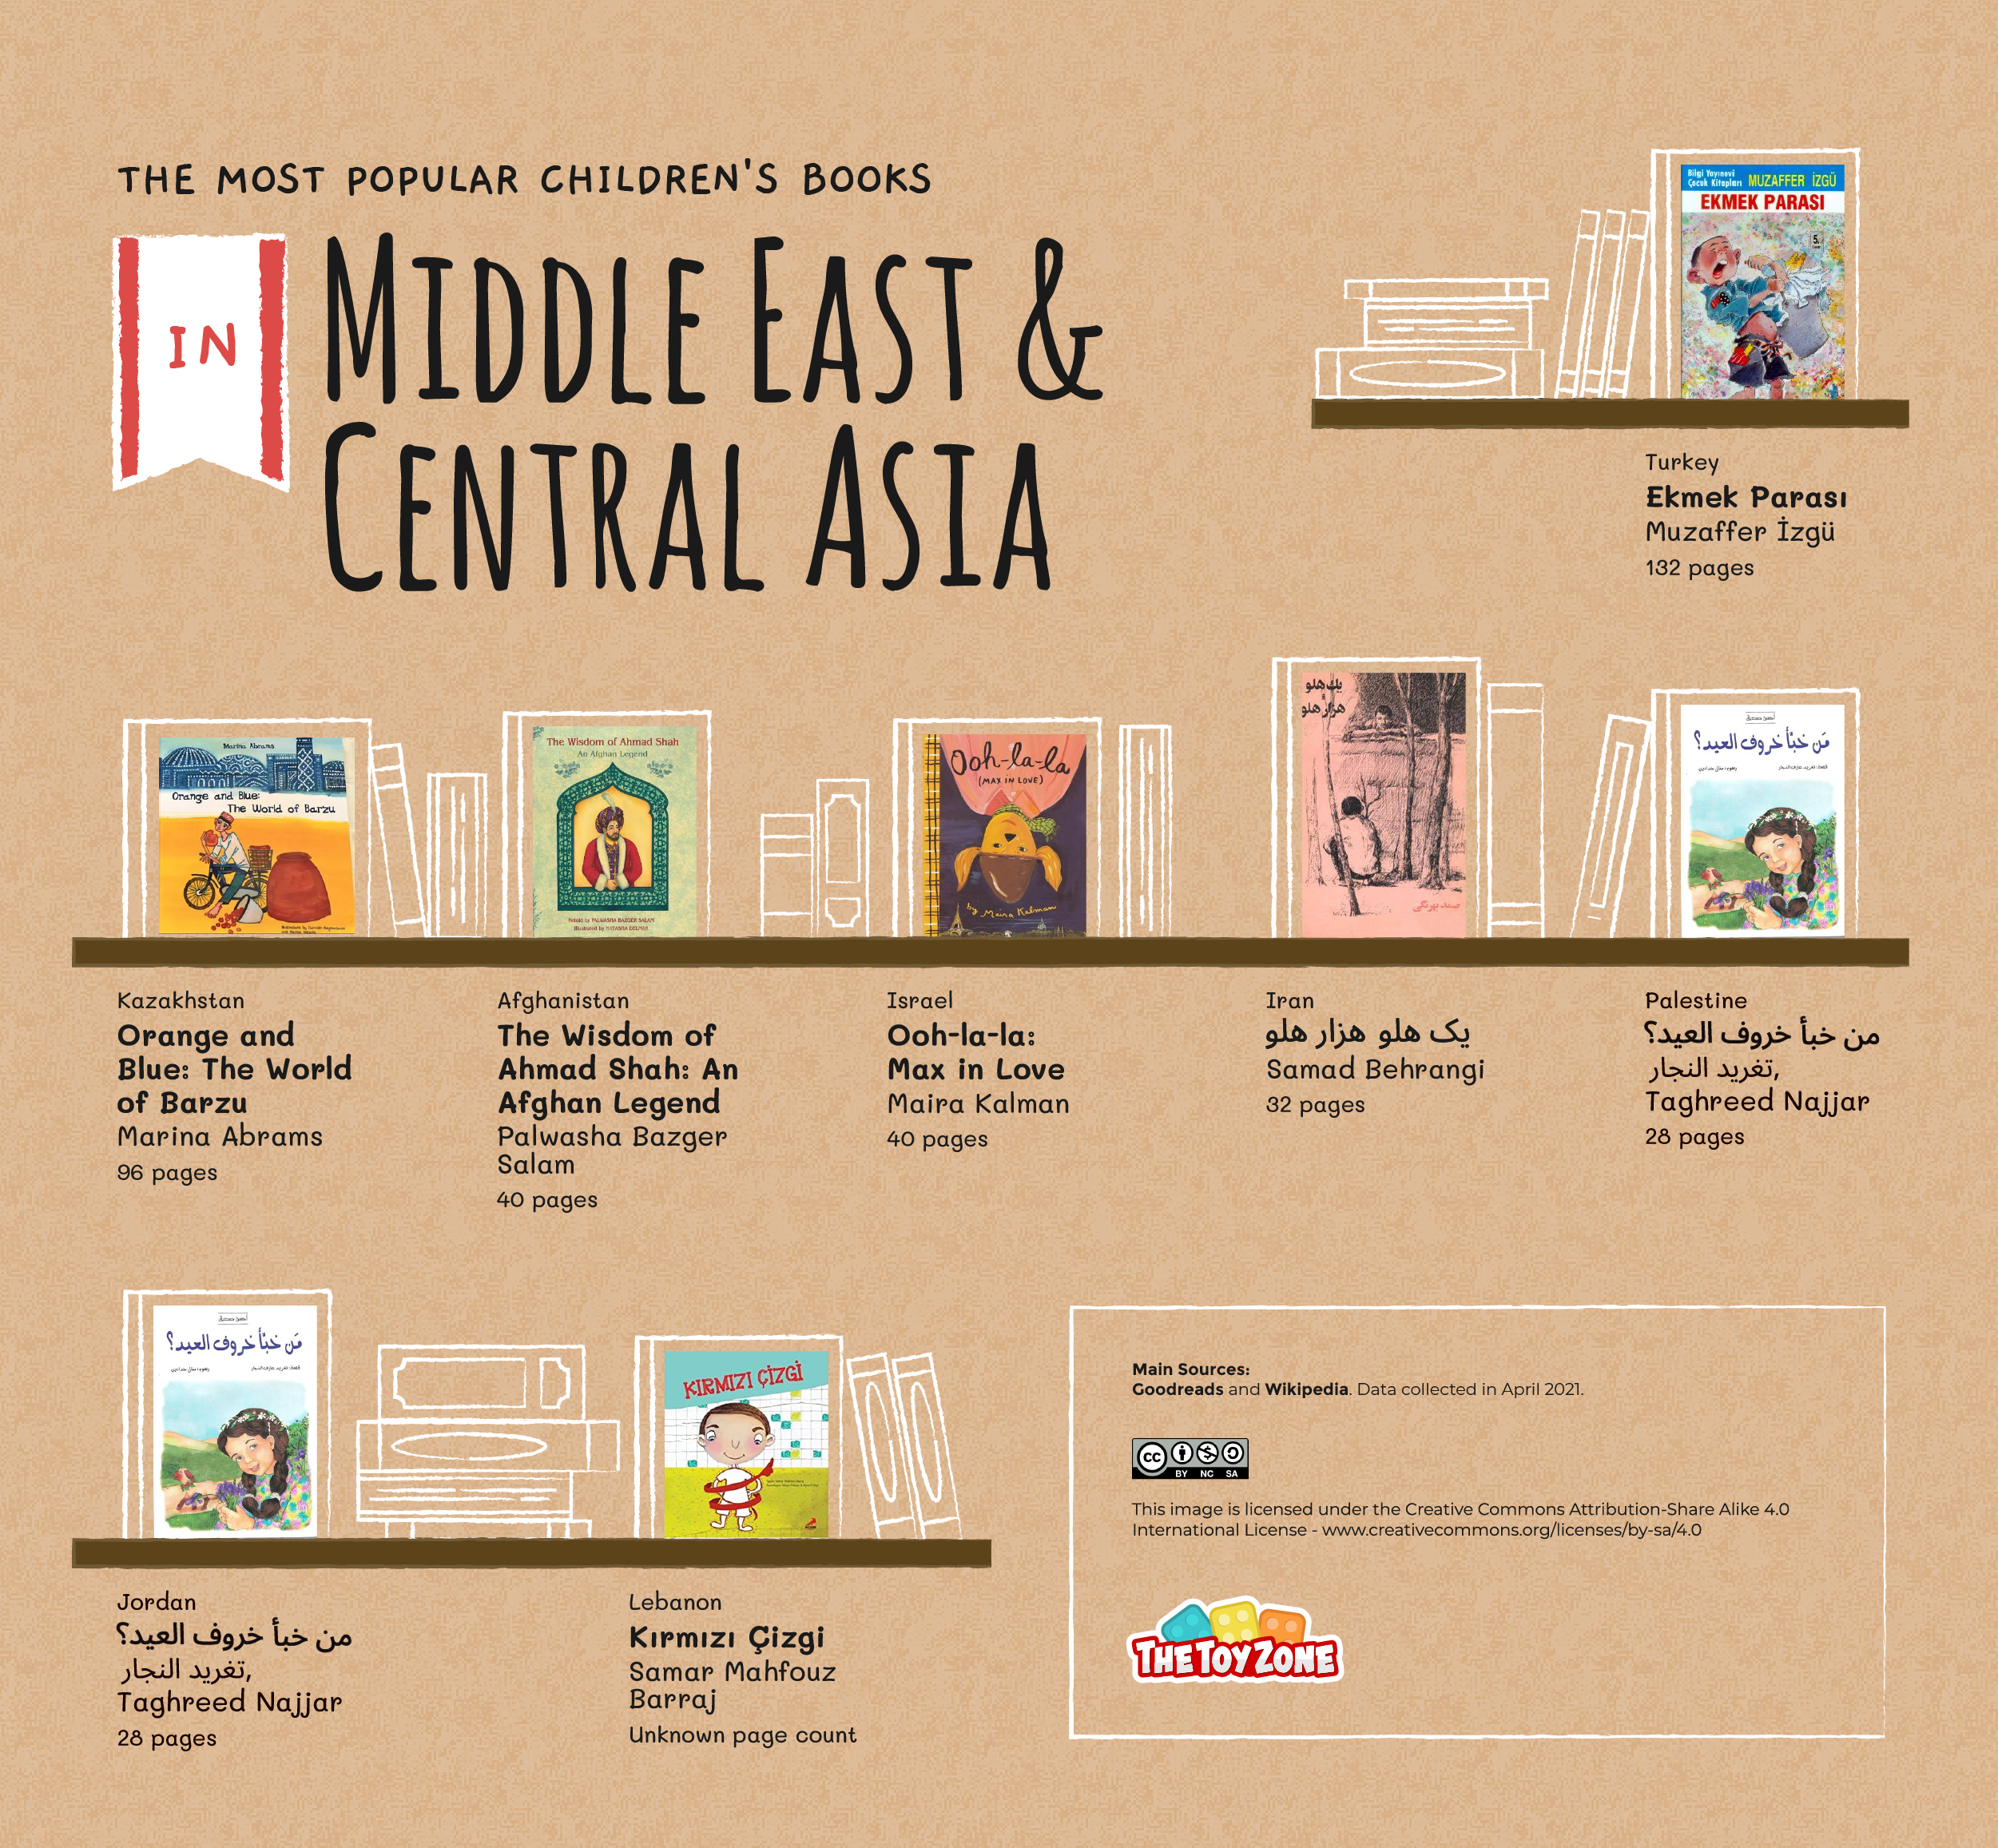 Most popular children's books in the Middle East and Central Asia